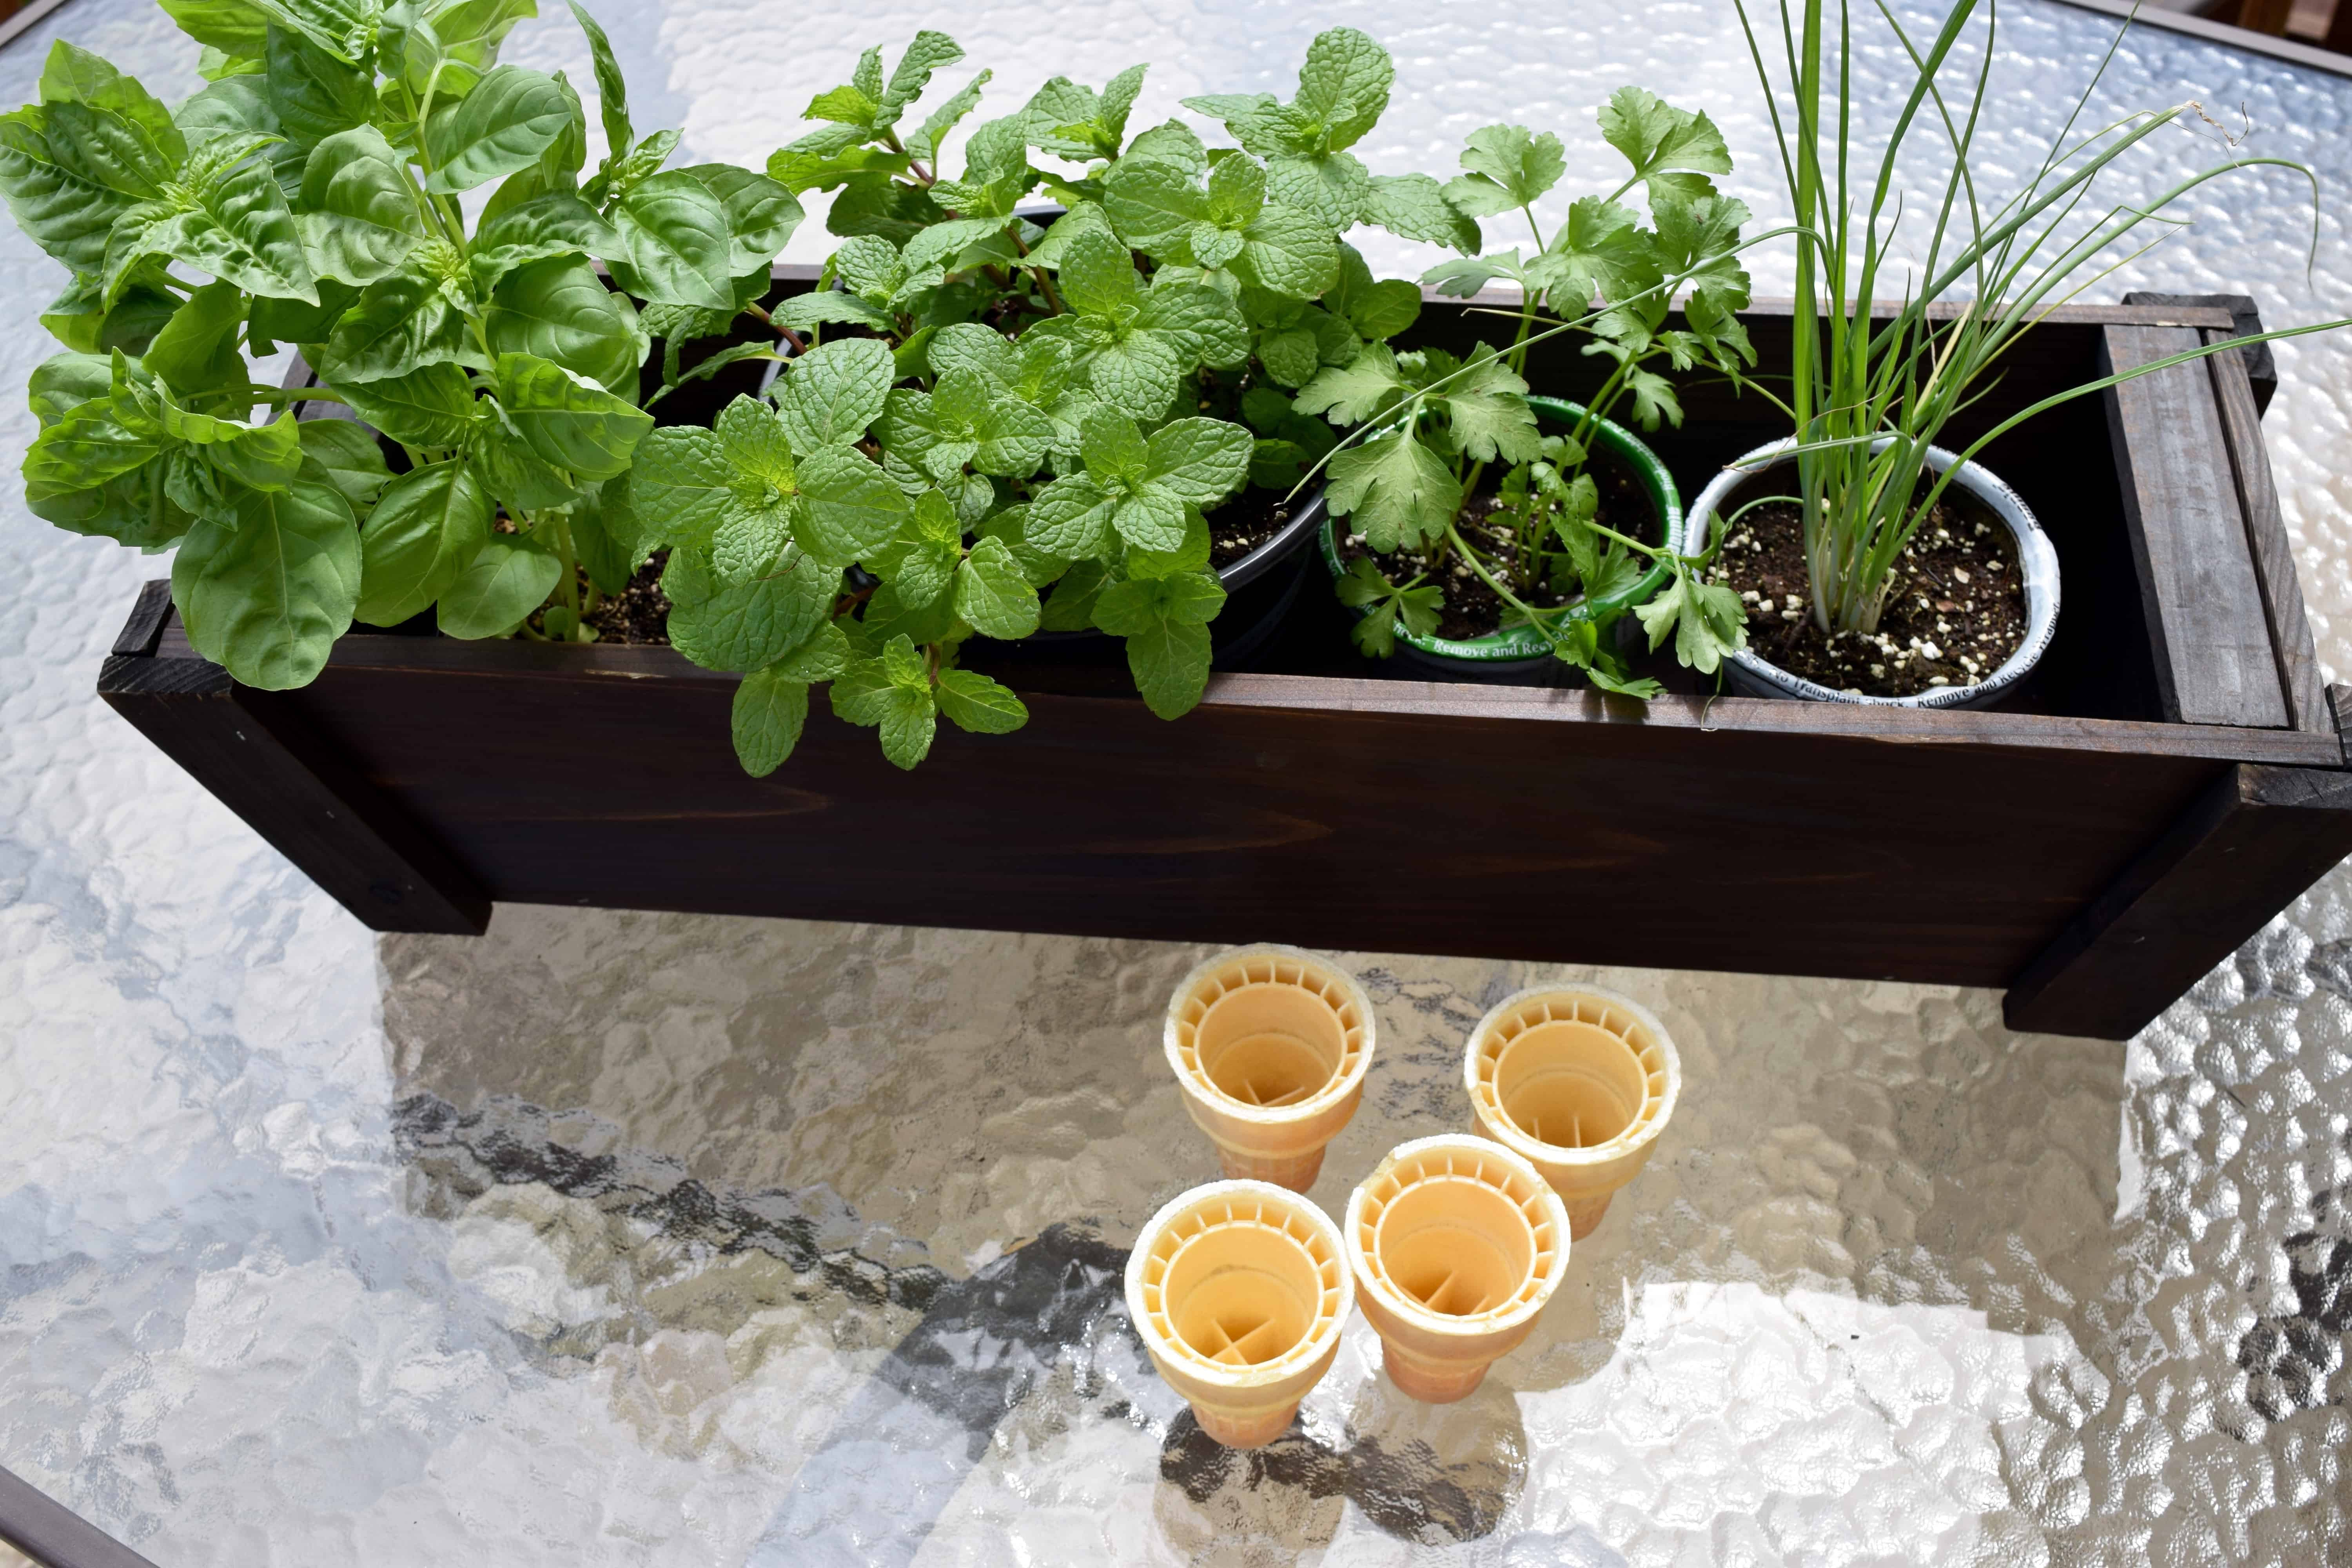 fancy cool idea awesome magz herbs design planter gardens vegetable herb set best ideas rectangle patio cedar of indoor small wood garden home diy for magnificent boxes boise kitchen